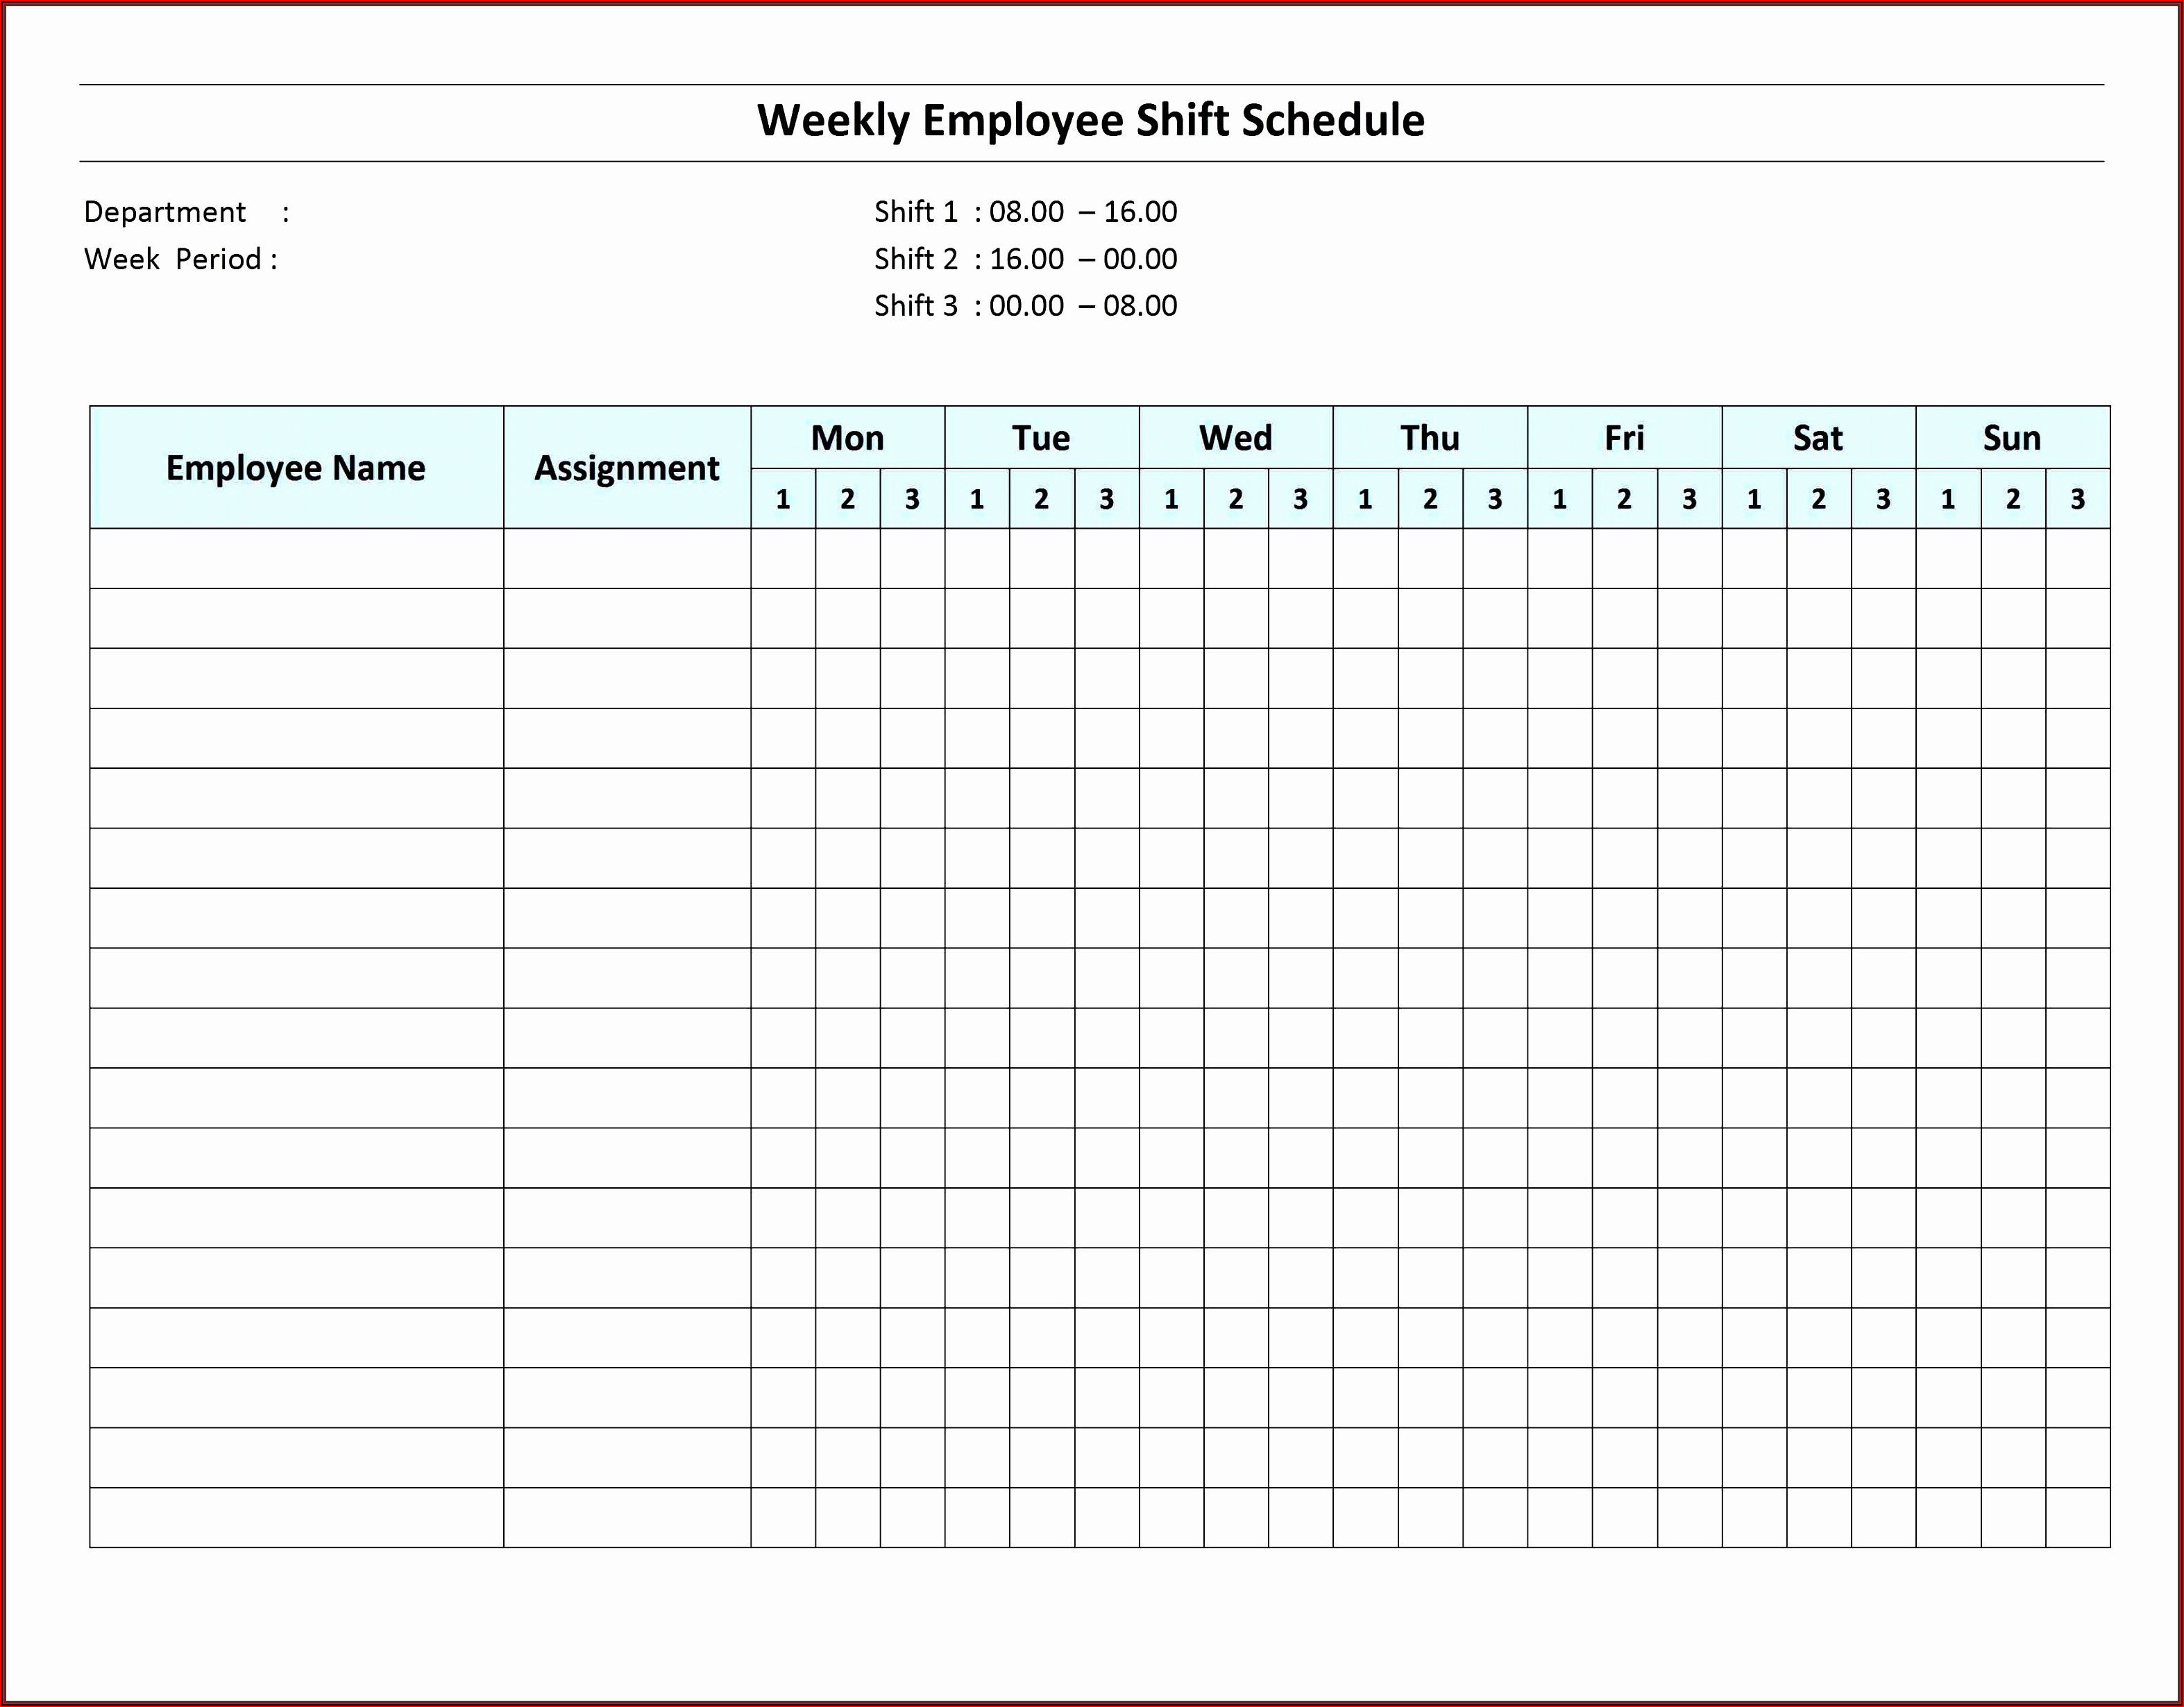 Daily Employee Shift Schedule Template